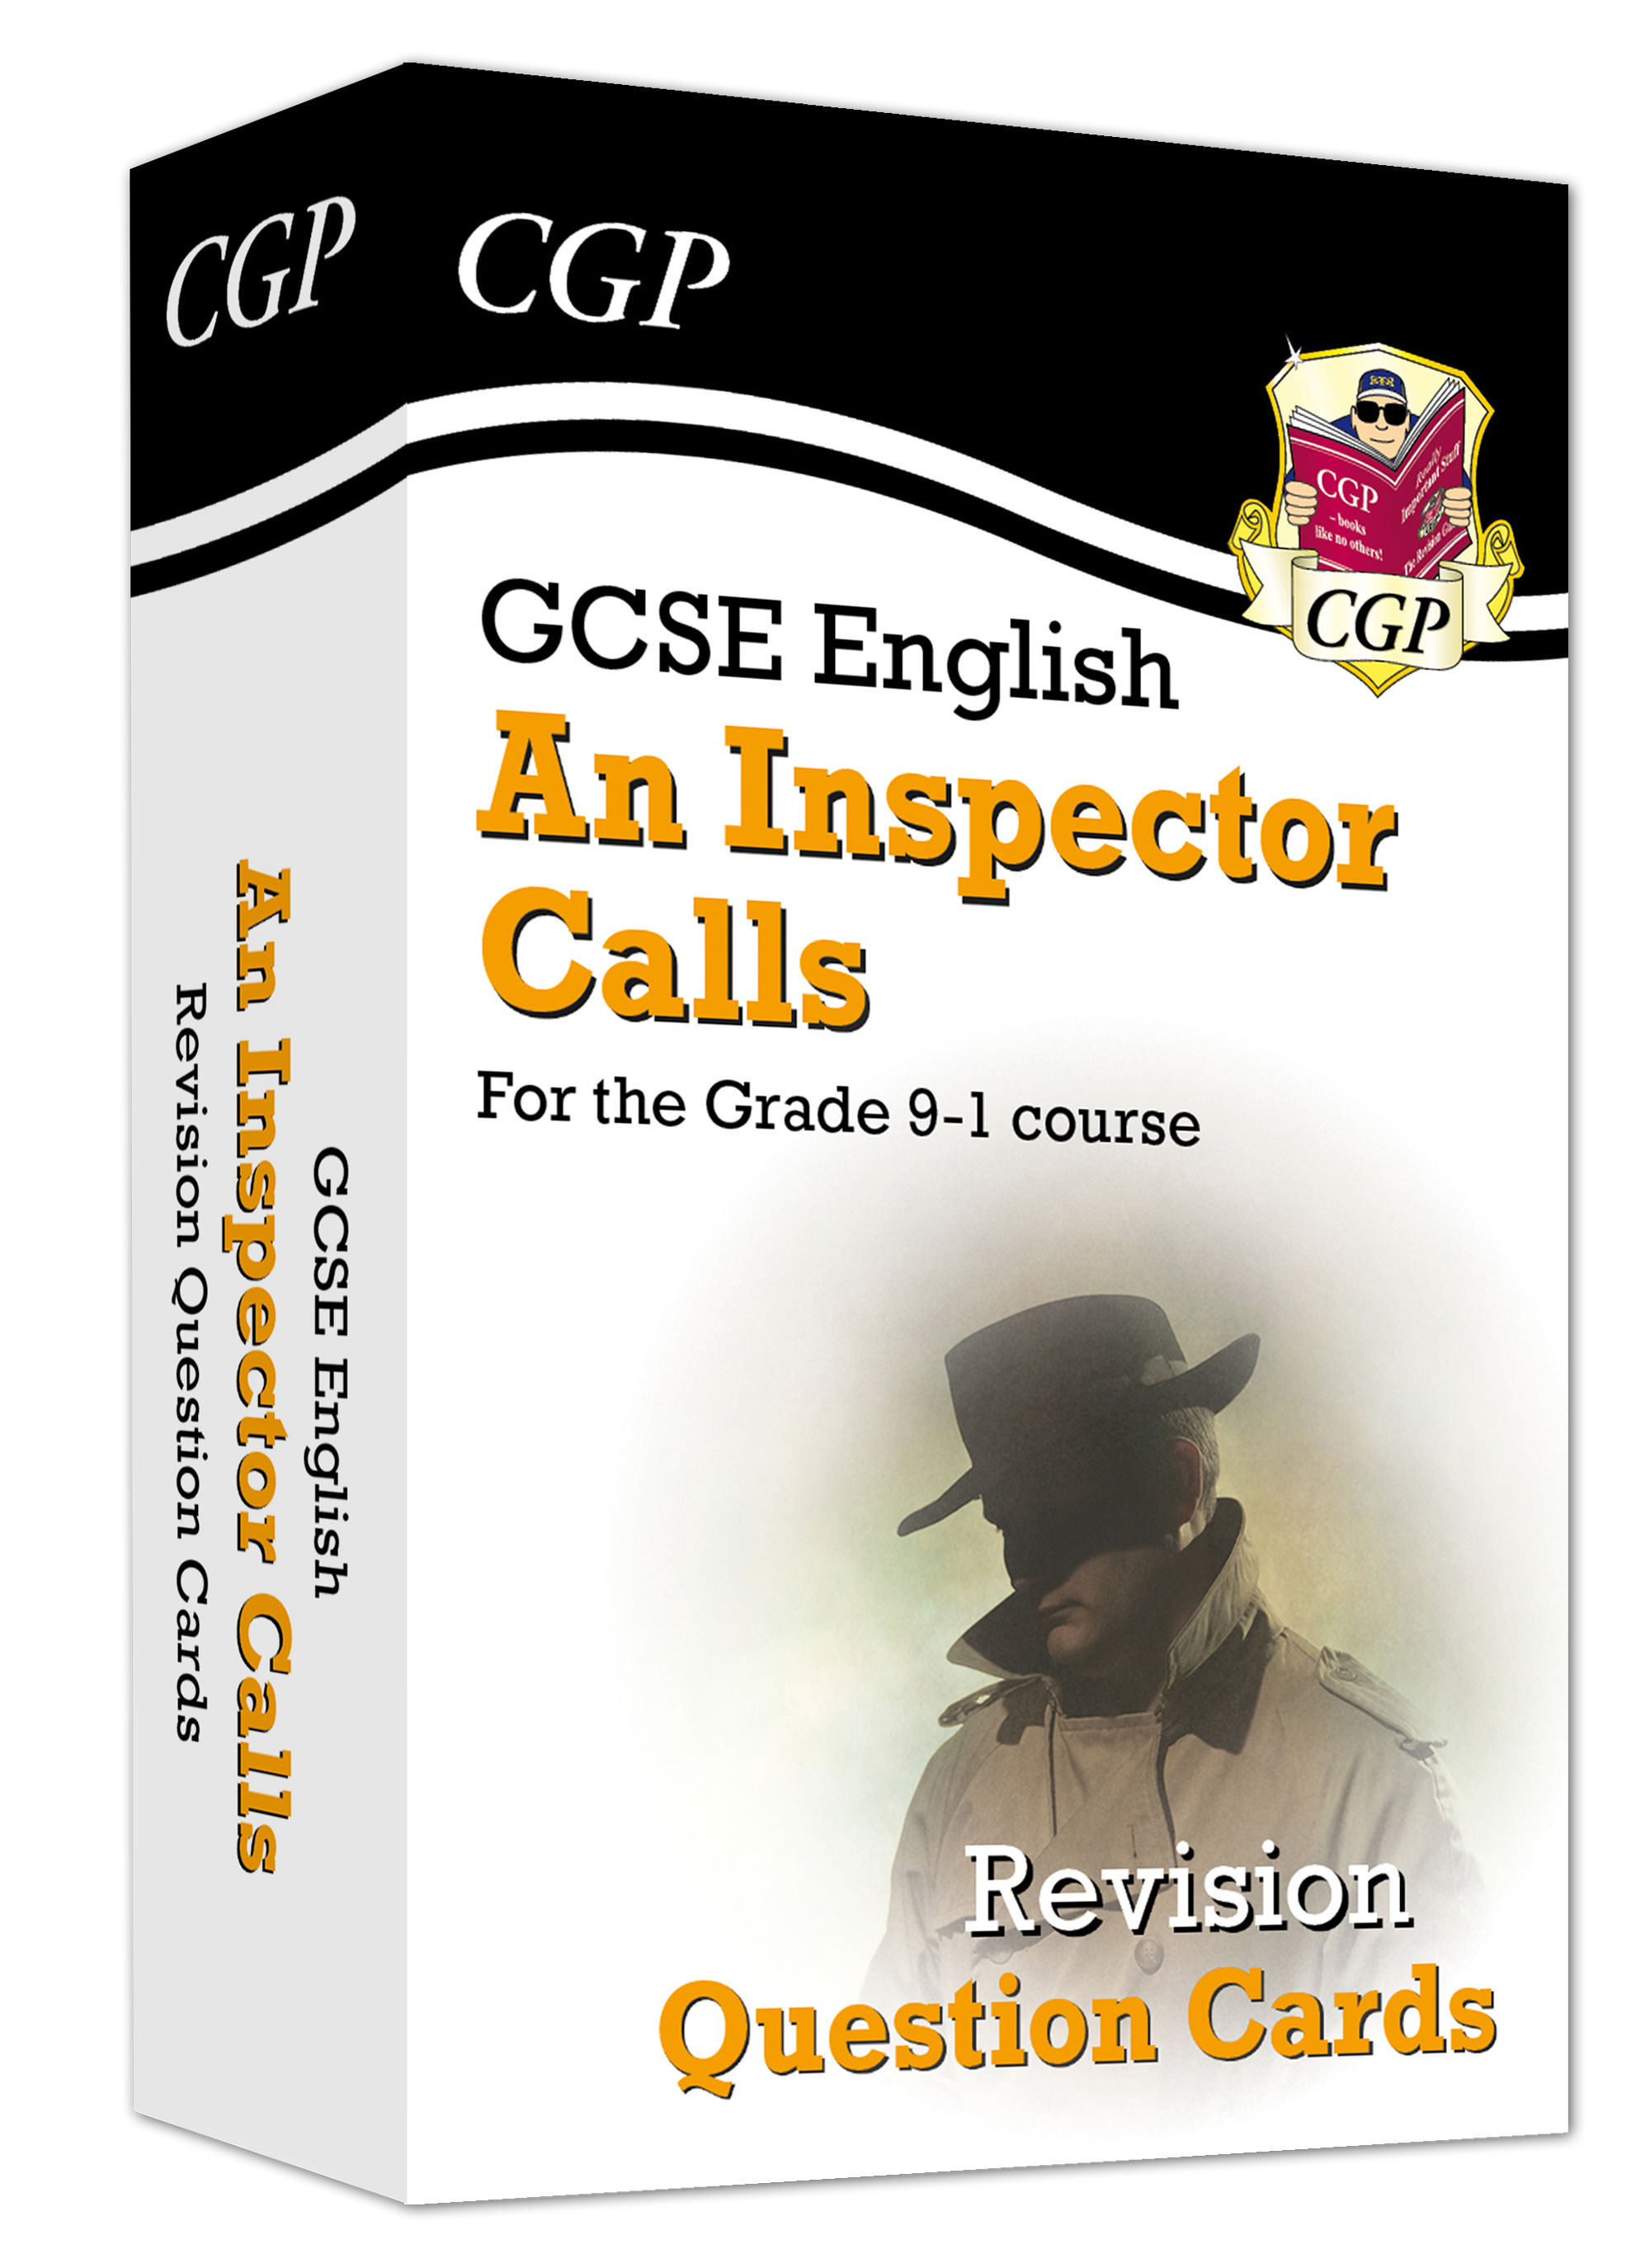 ETFI41DK - New Grade 9-1 GCSE English - An Inspector Calls Revision Question Cards